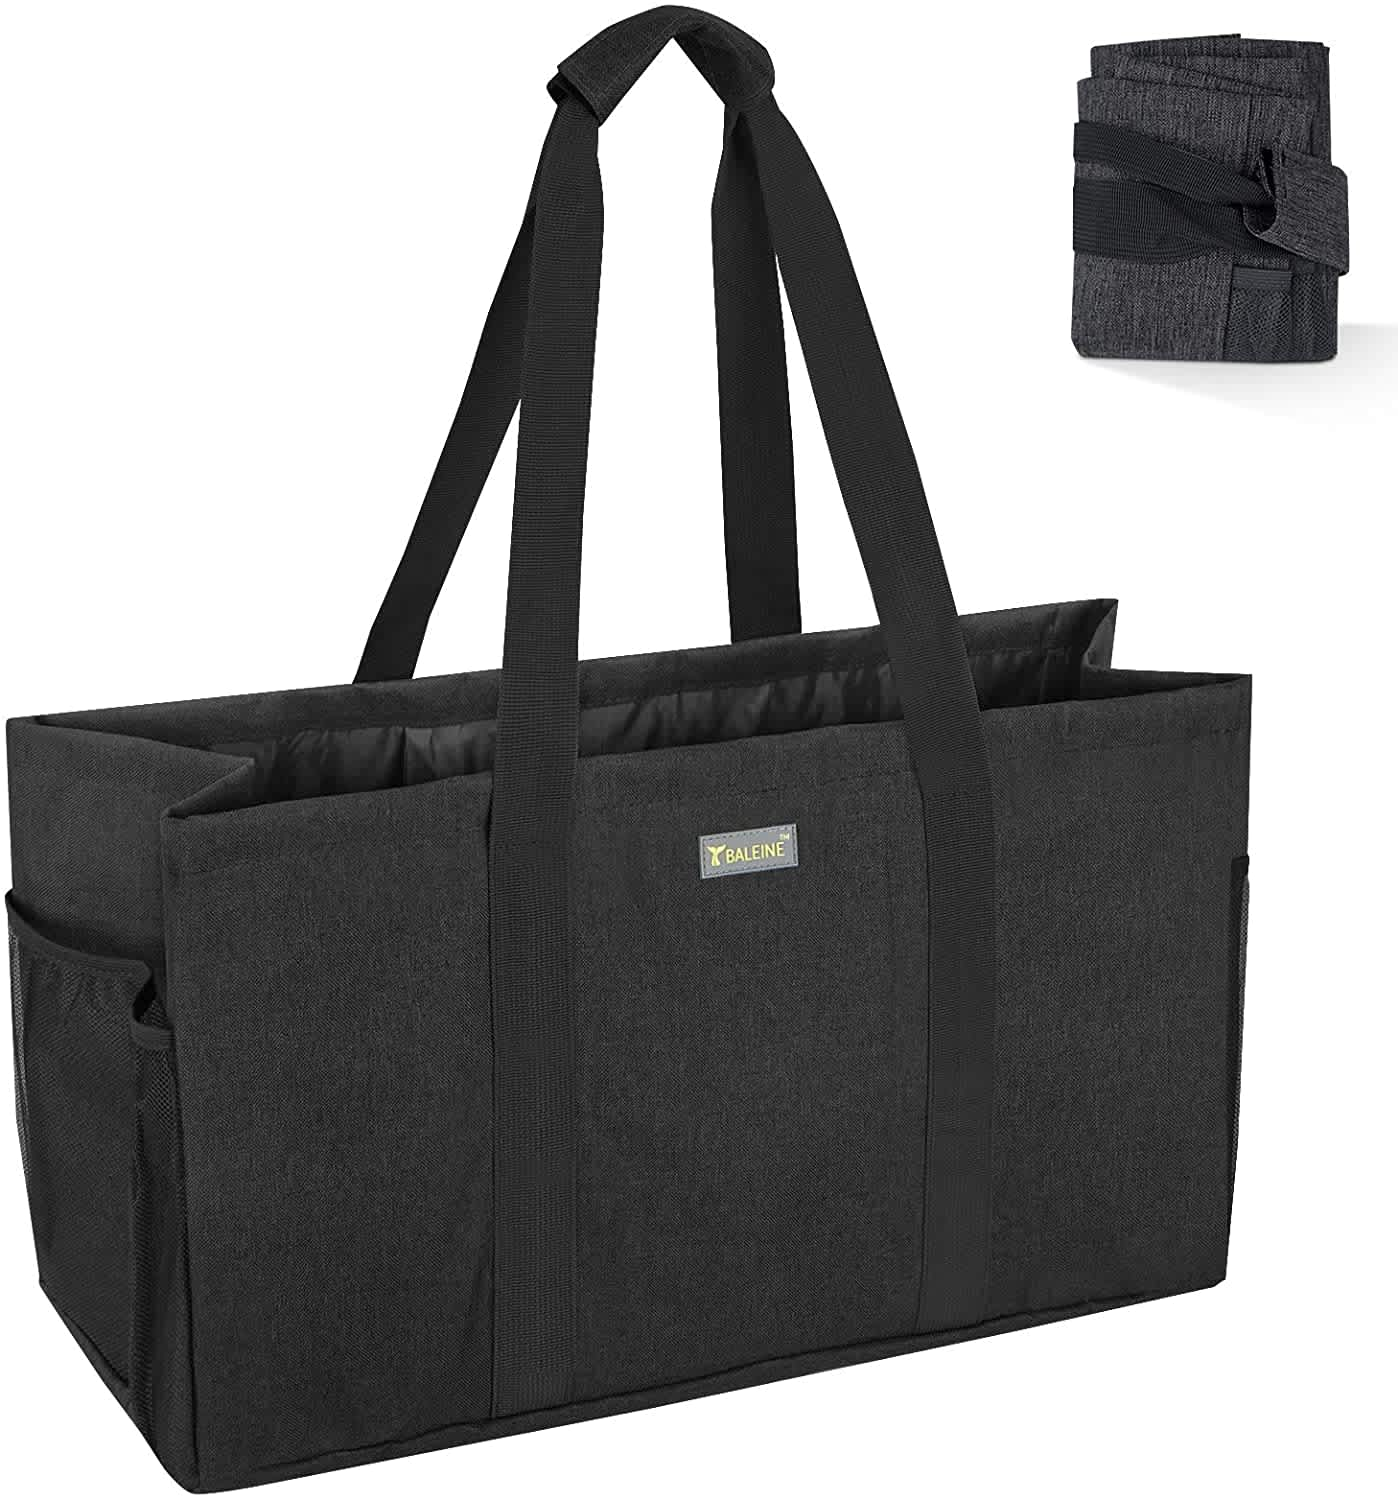 Baleine Reusable Utility Tote with Reinforced Handles